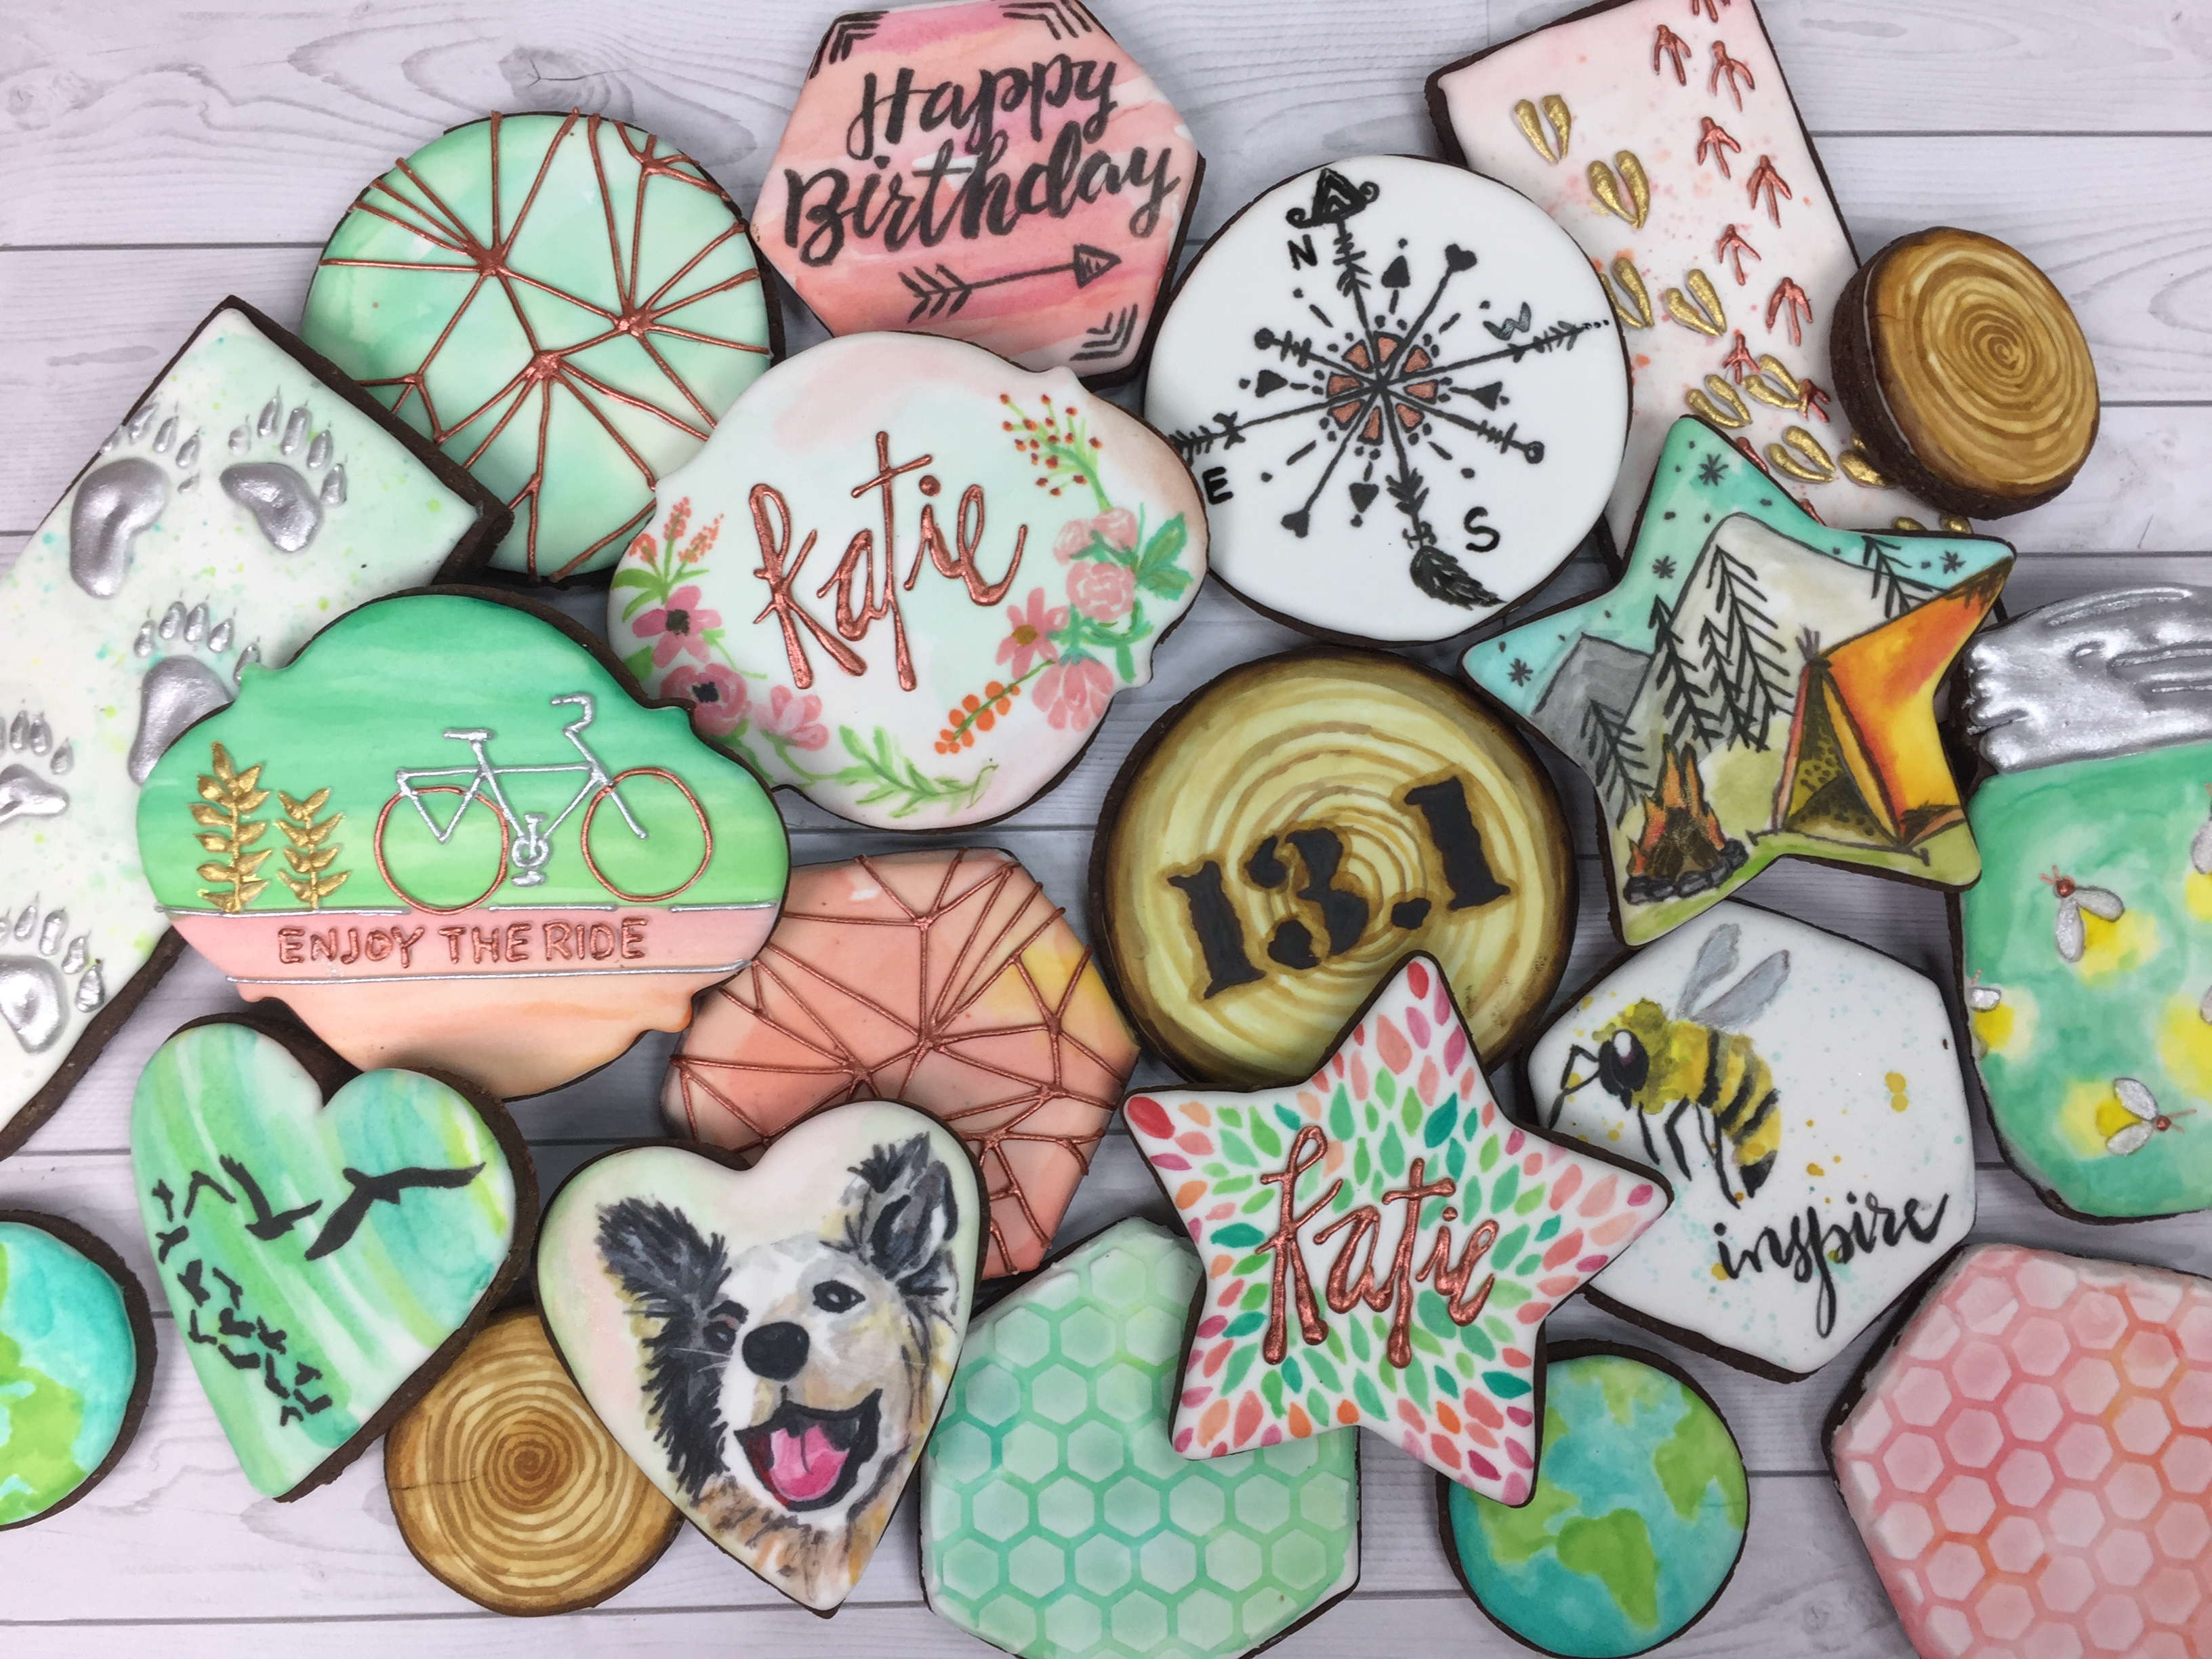 Painted cookies from Sara's Sweets.